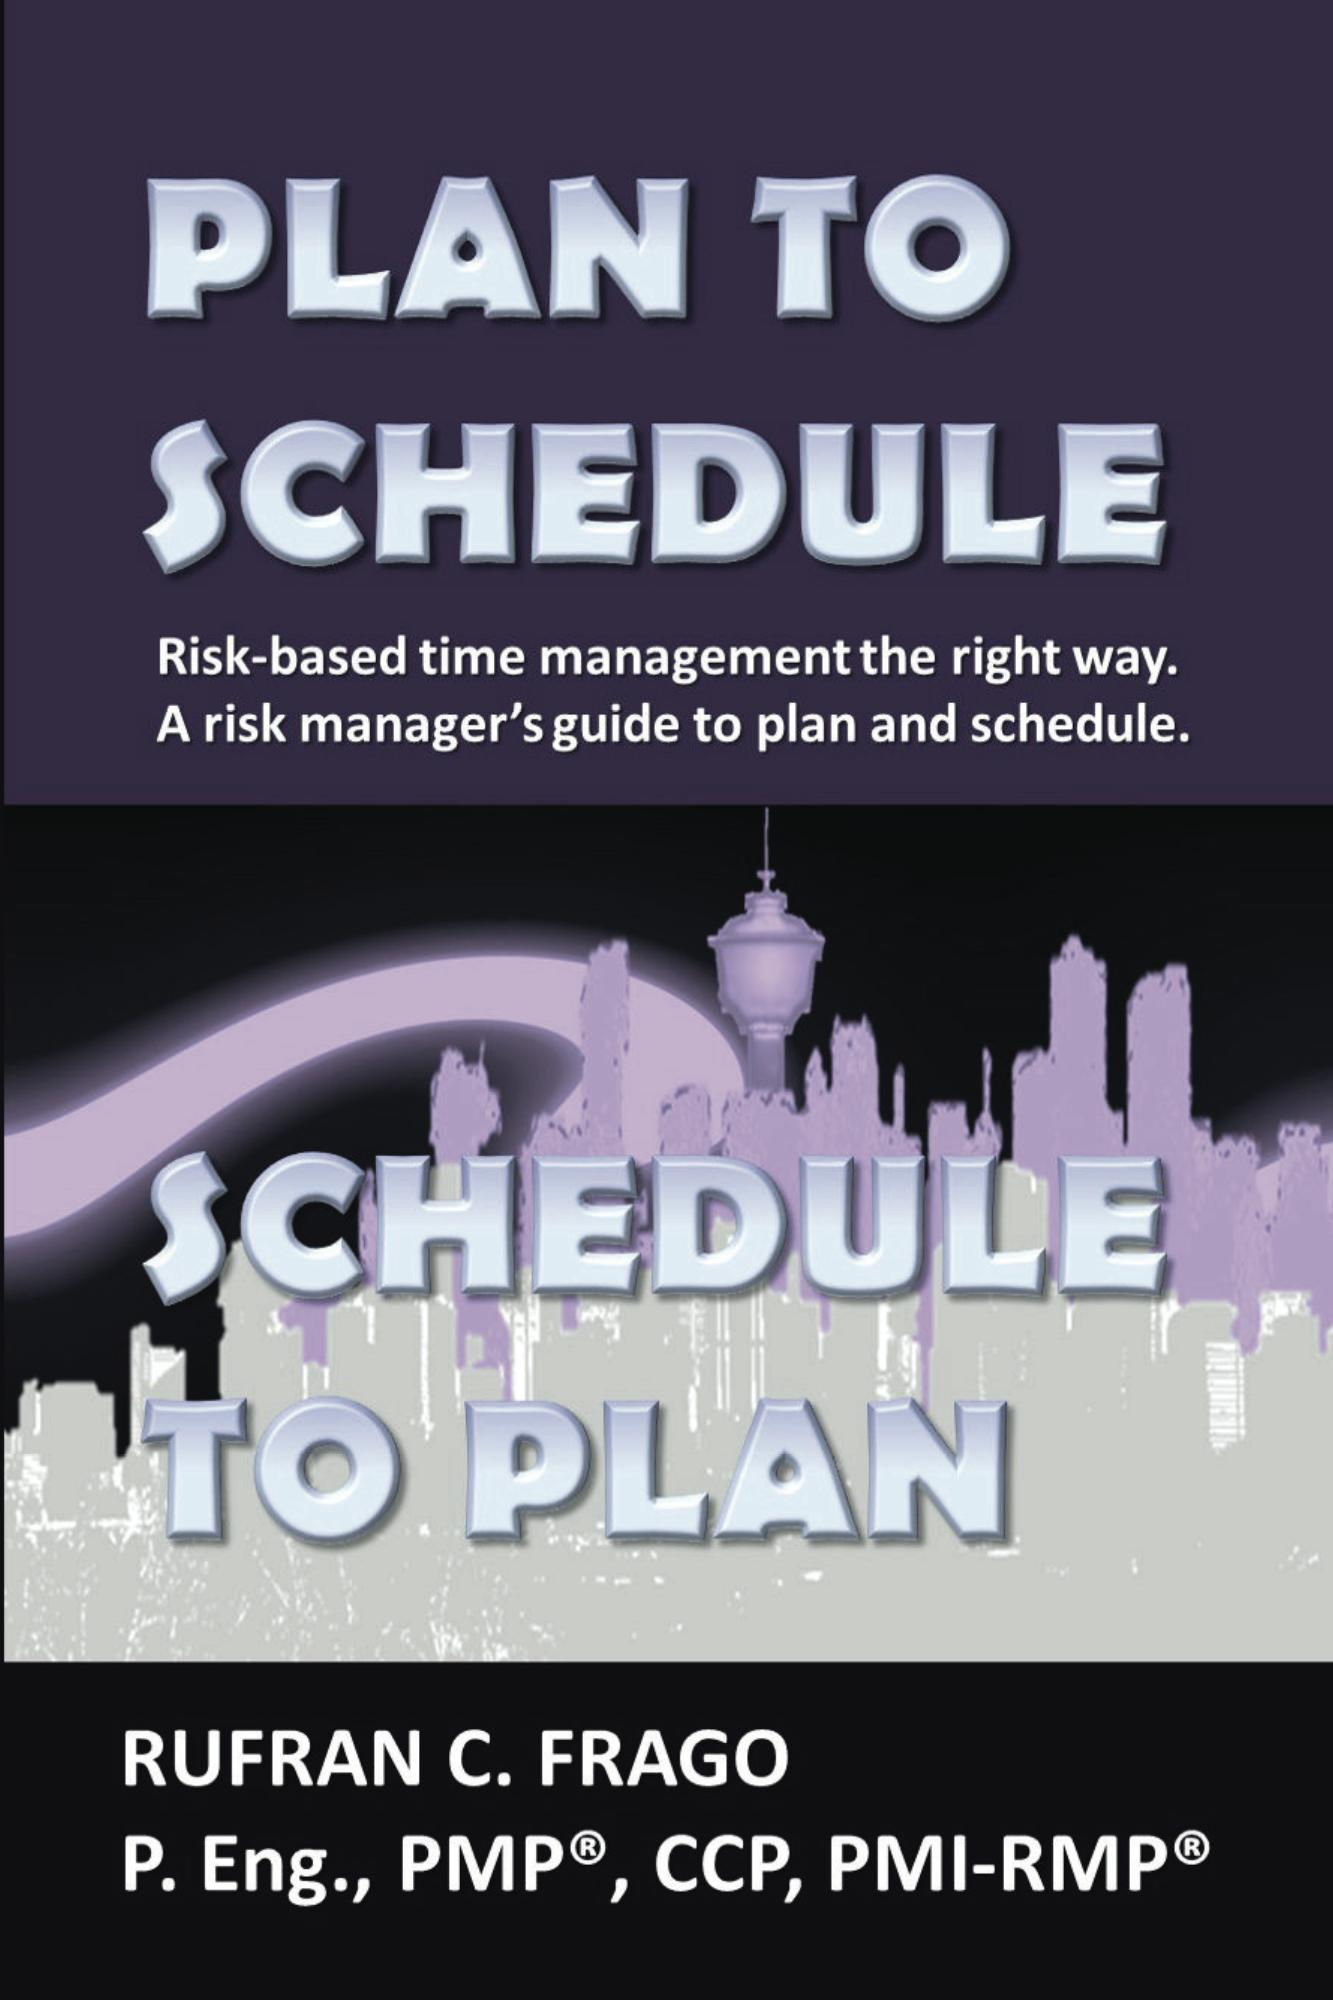 EB003 Plan to Schedule, Schedule to Planor_Kindle